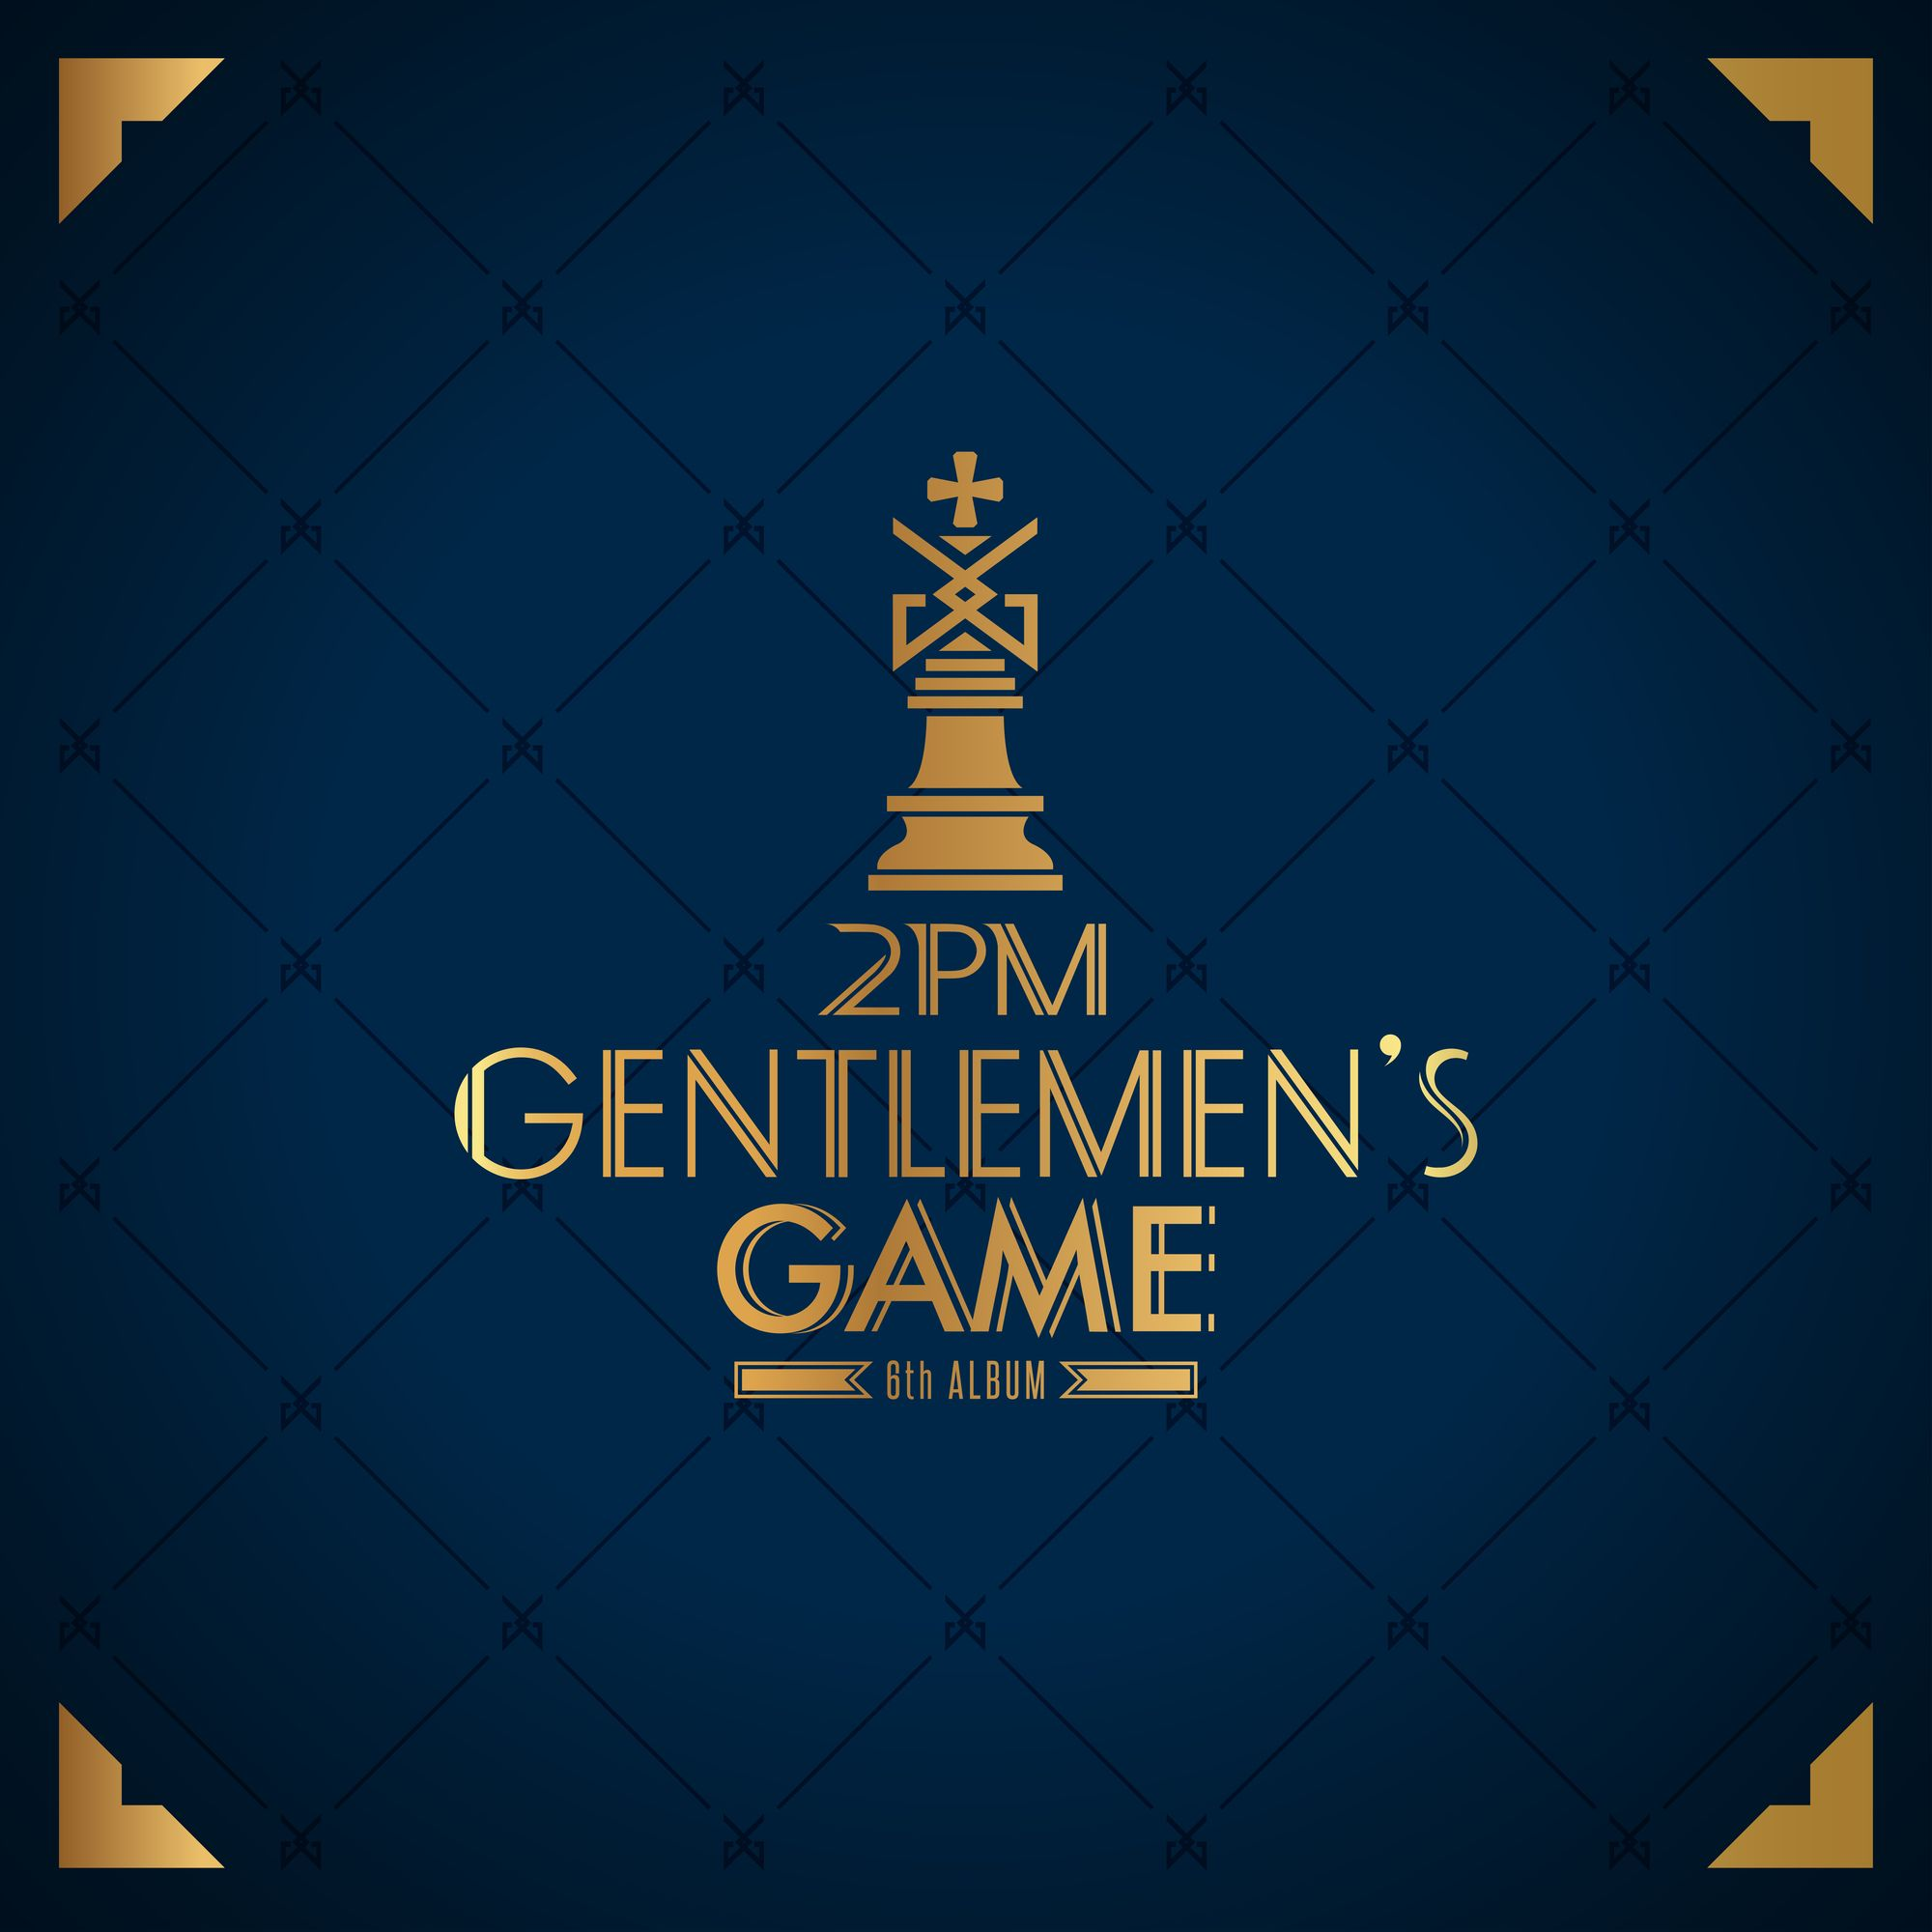 [2PM] GENTLEMEN`S GAME